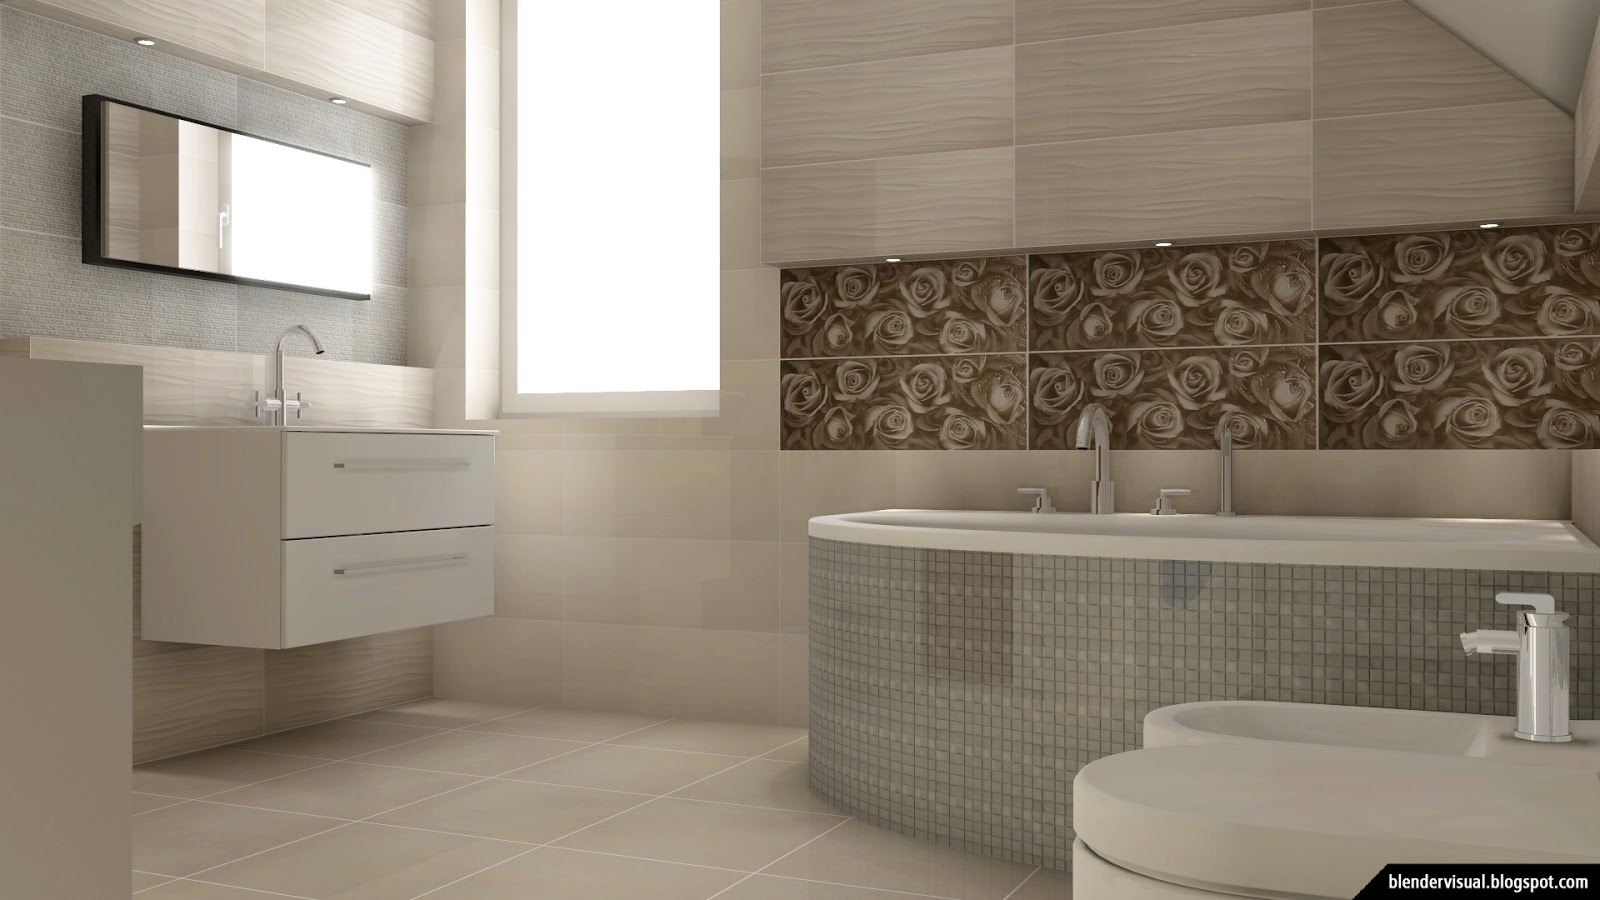 Visual blender daily render 002 the best functional bathroom design ideas - Five modern gadgets for a functional bathroom ...